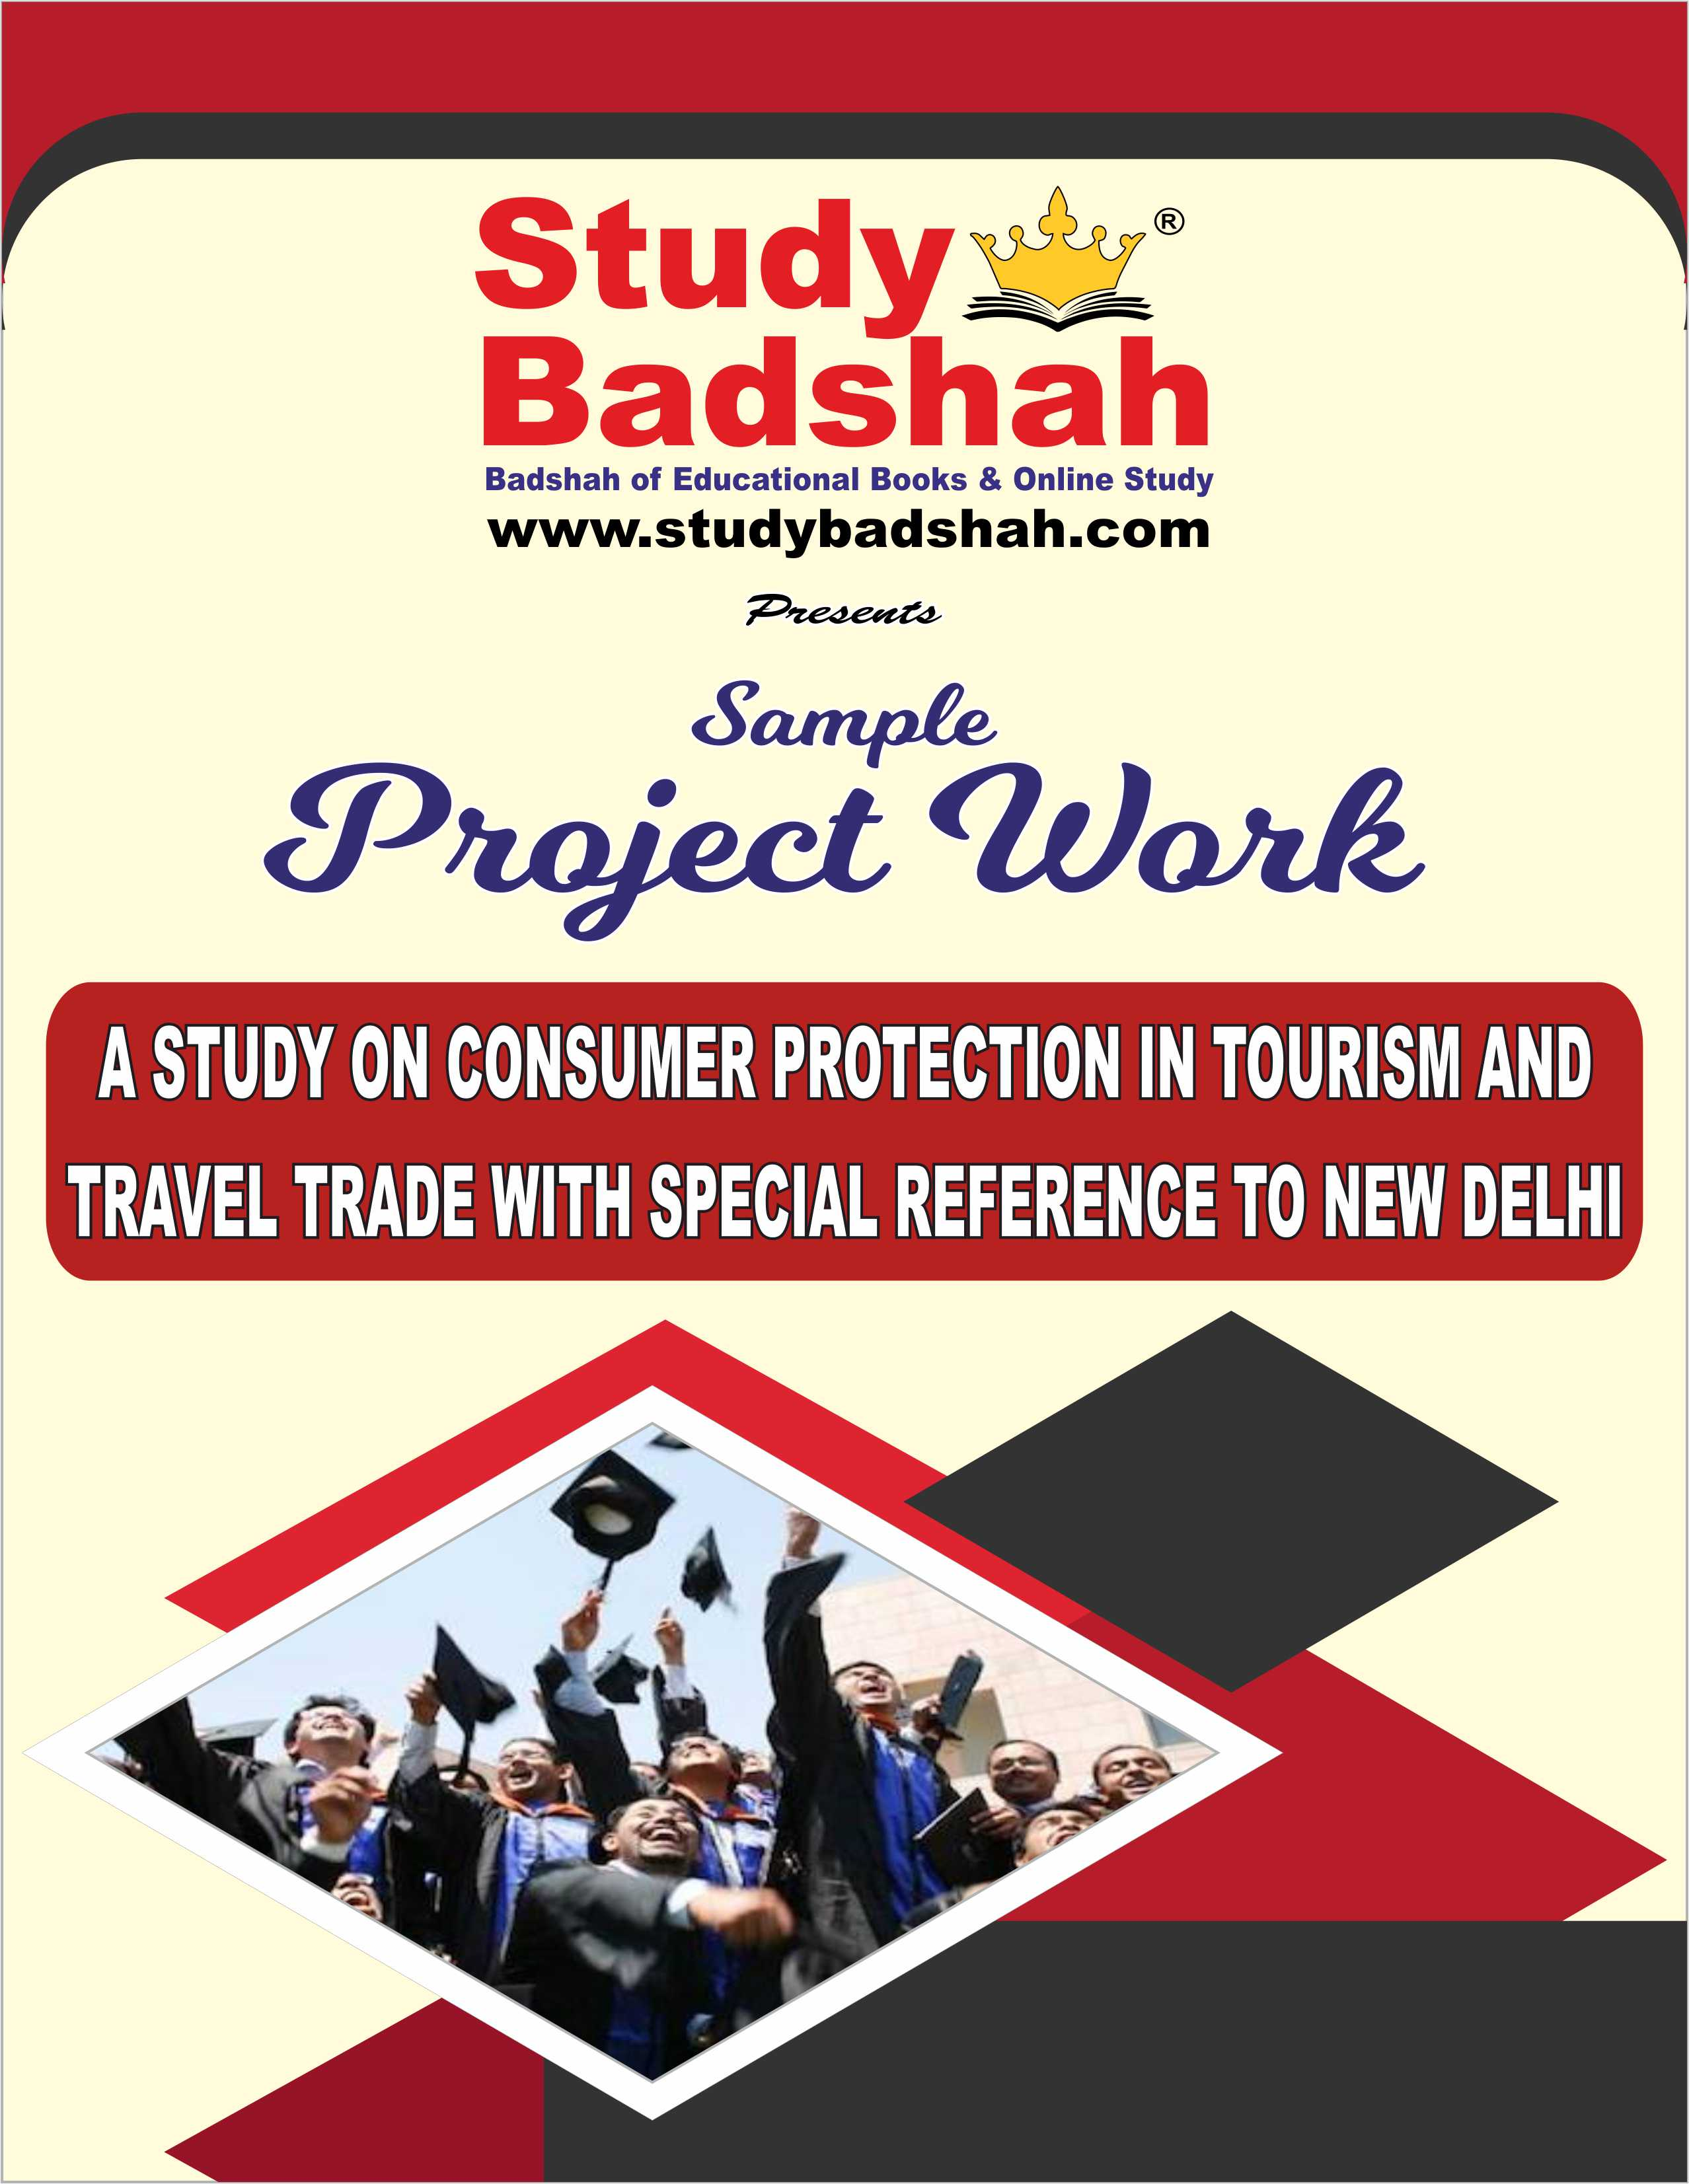 A Study on Consumer Protection in Tourism and Travel Trade With Special Reference to New Delhi